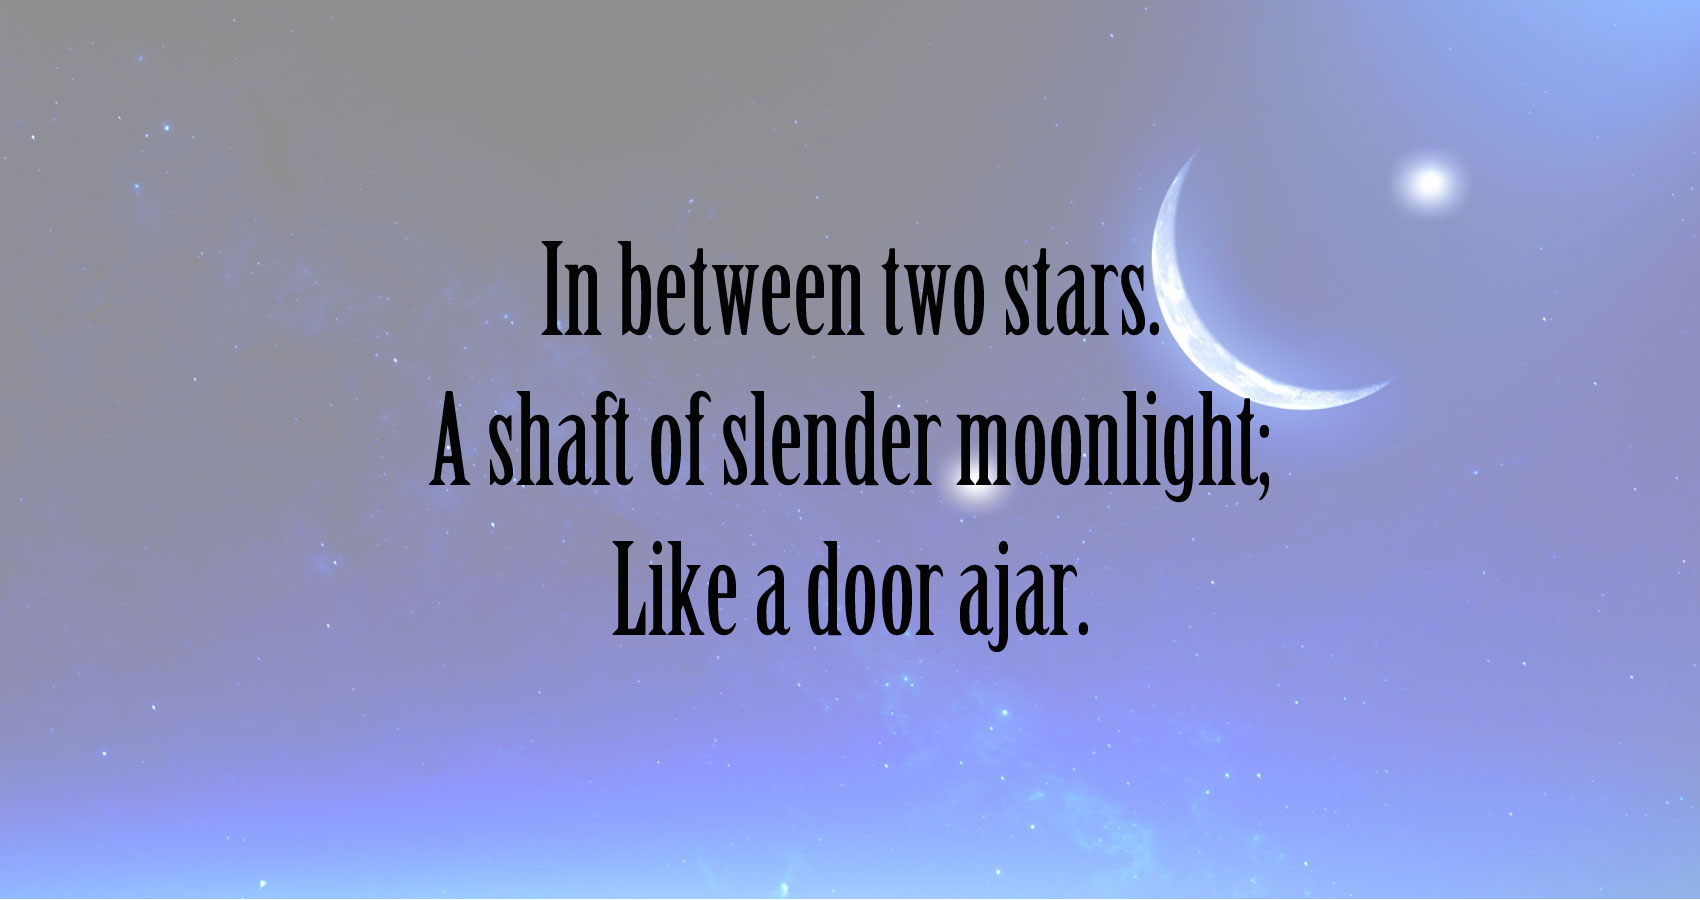 In Between the Stars at Spillwords.com